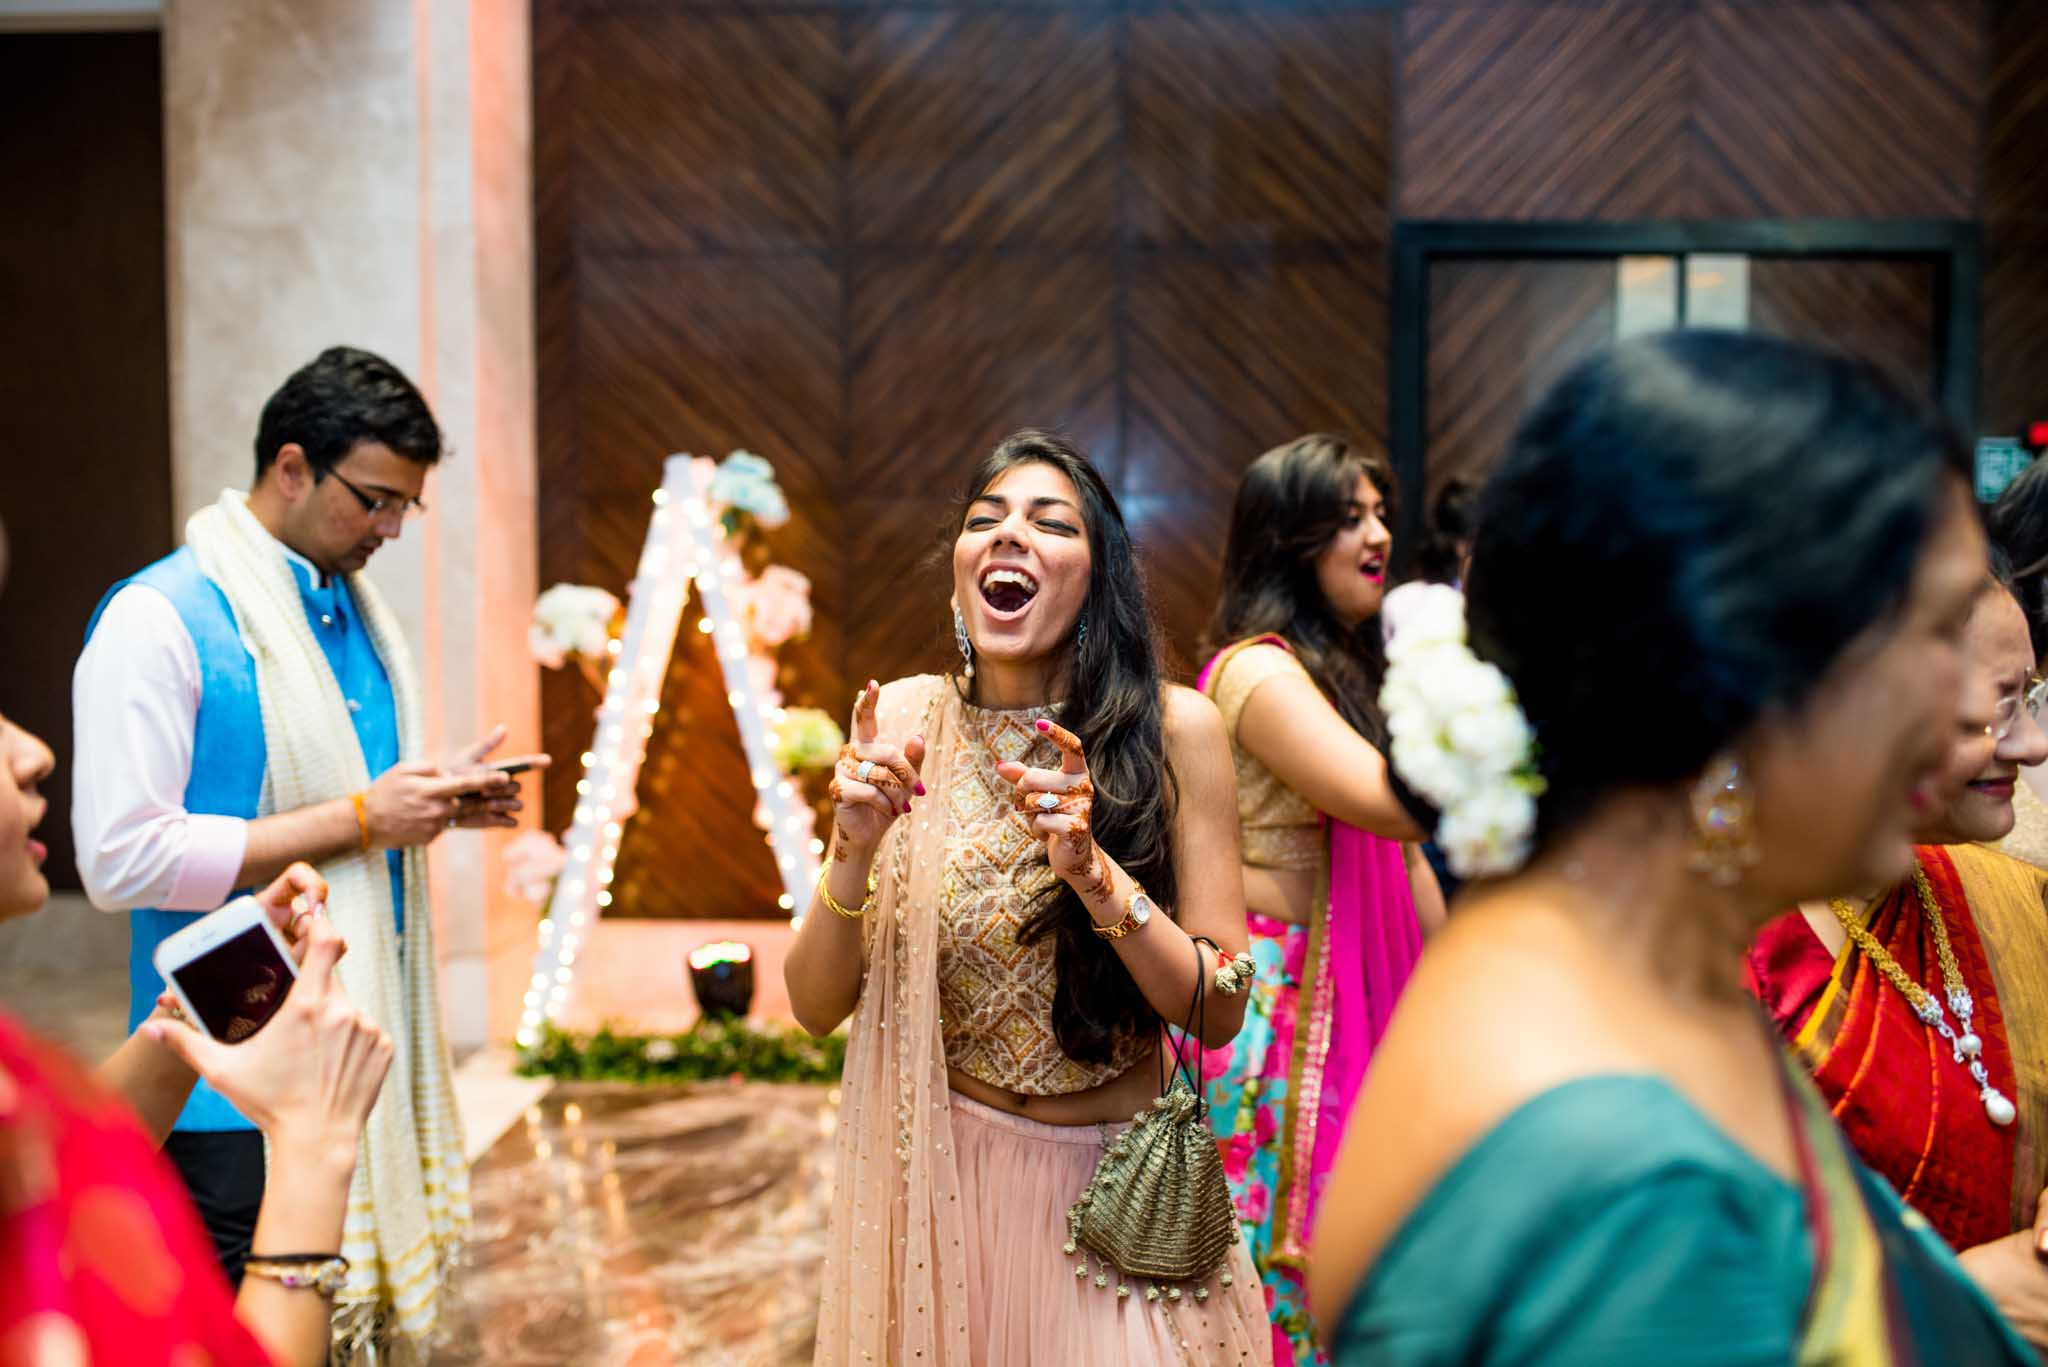 StRegis-Palladium-Mumbai-Candid-Wedding-Photography-24